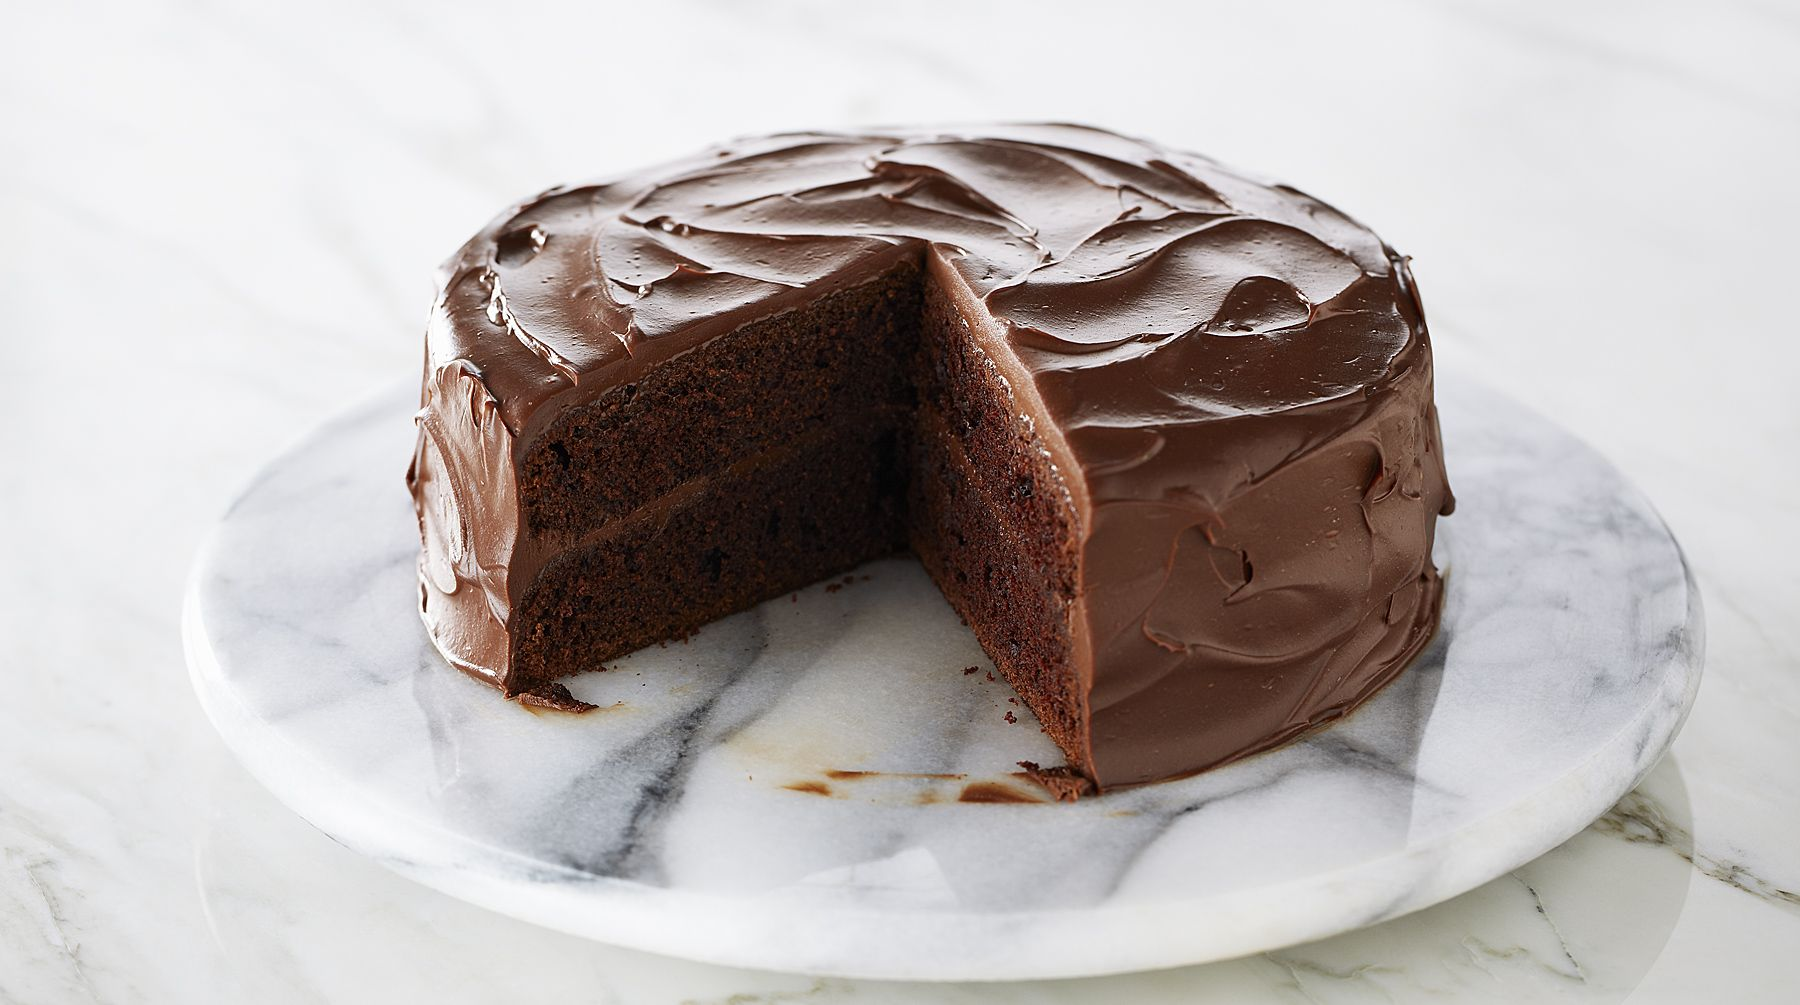 Recipe classic devils food cake asian food channel whats recipe classic devils food cake asian food channel forumfinder Choice Image